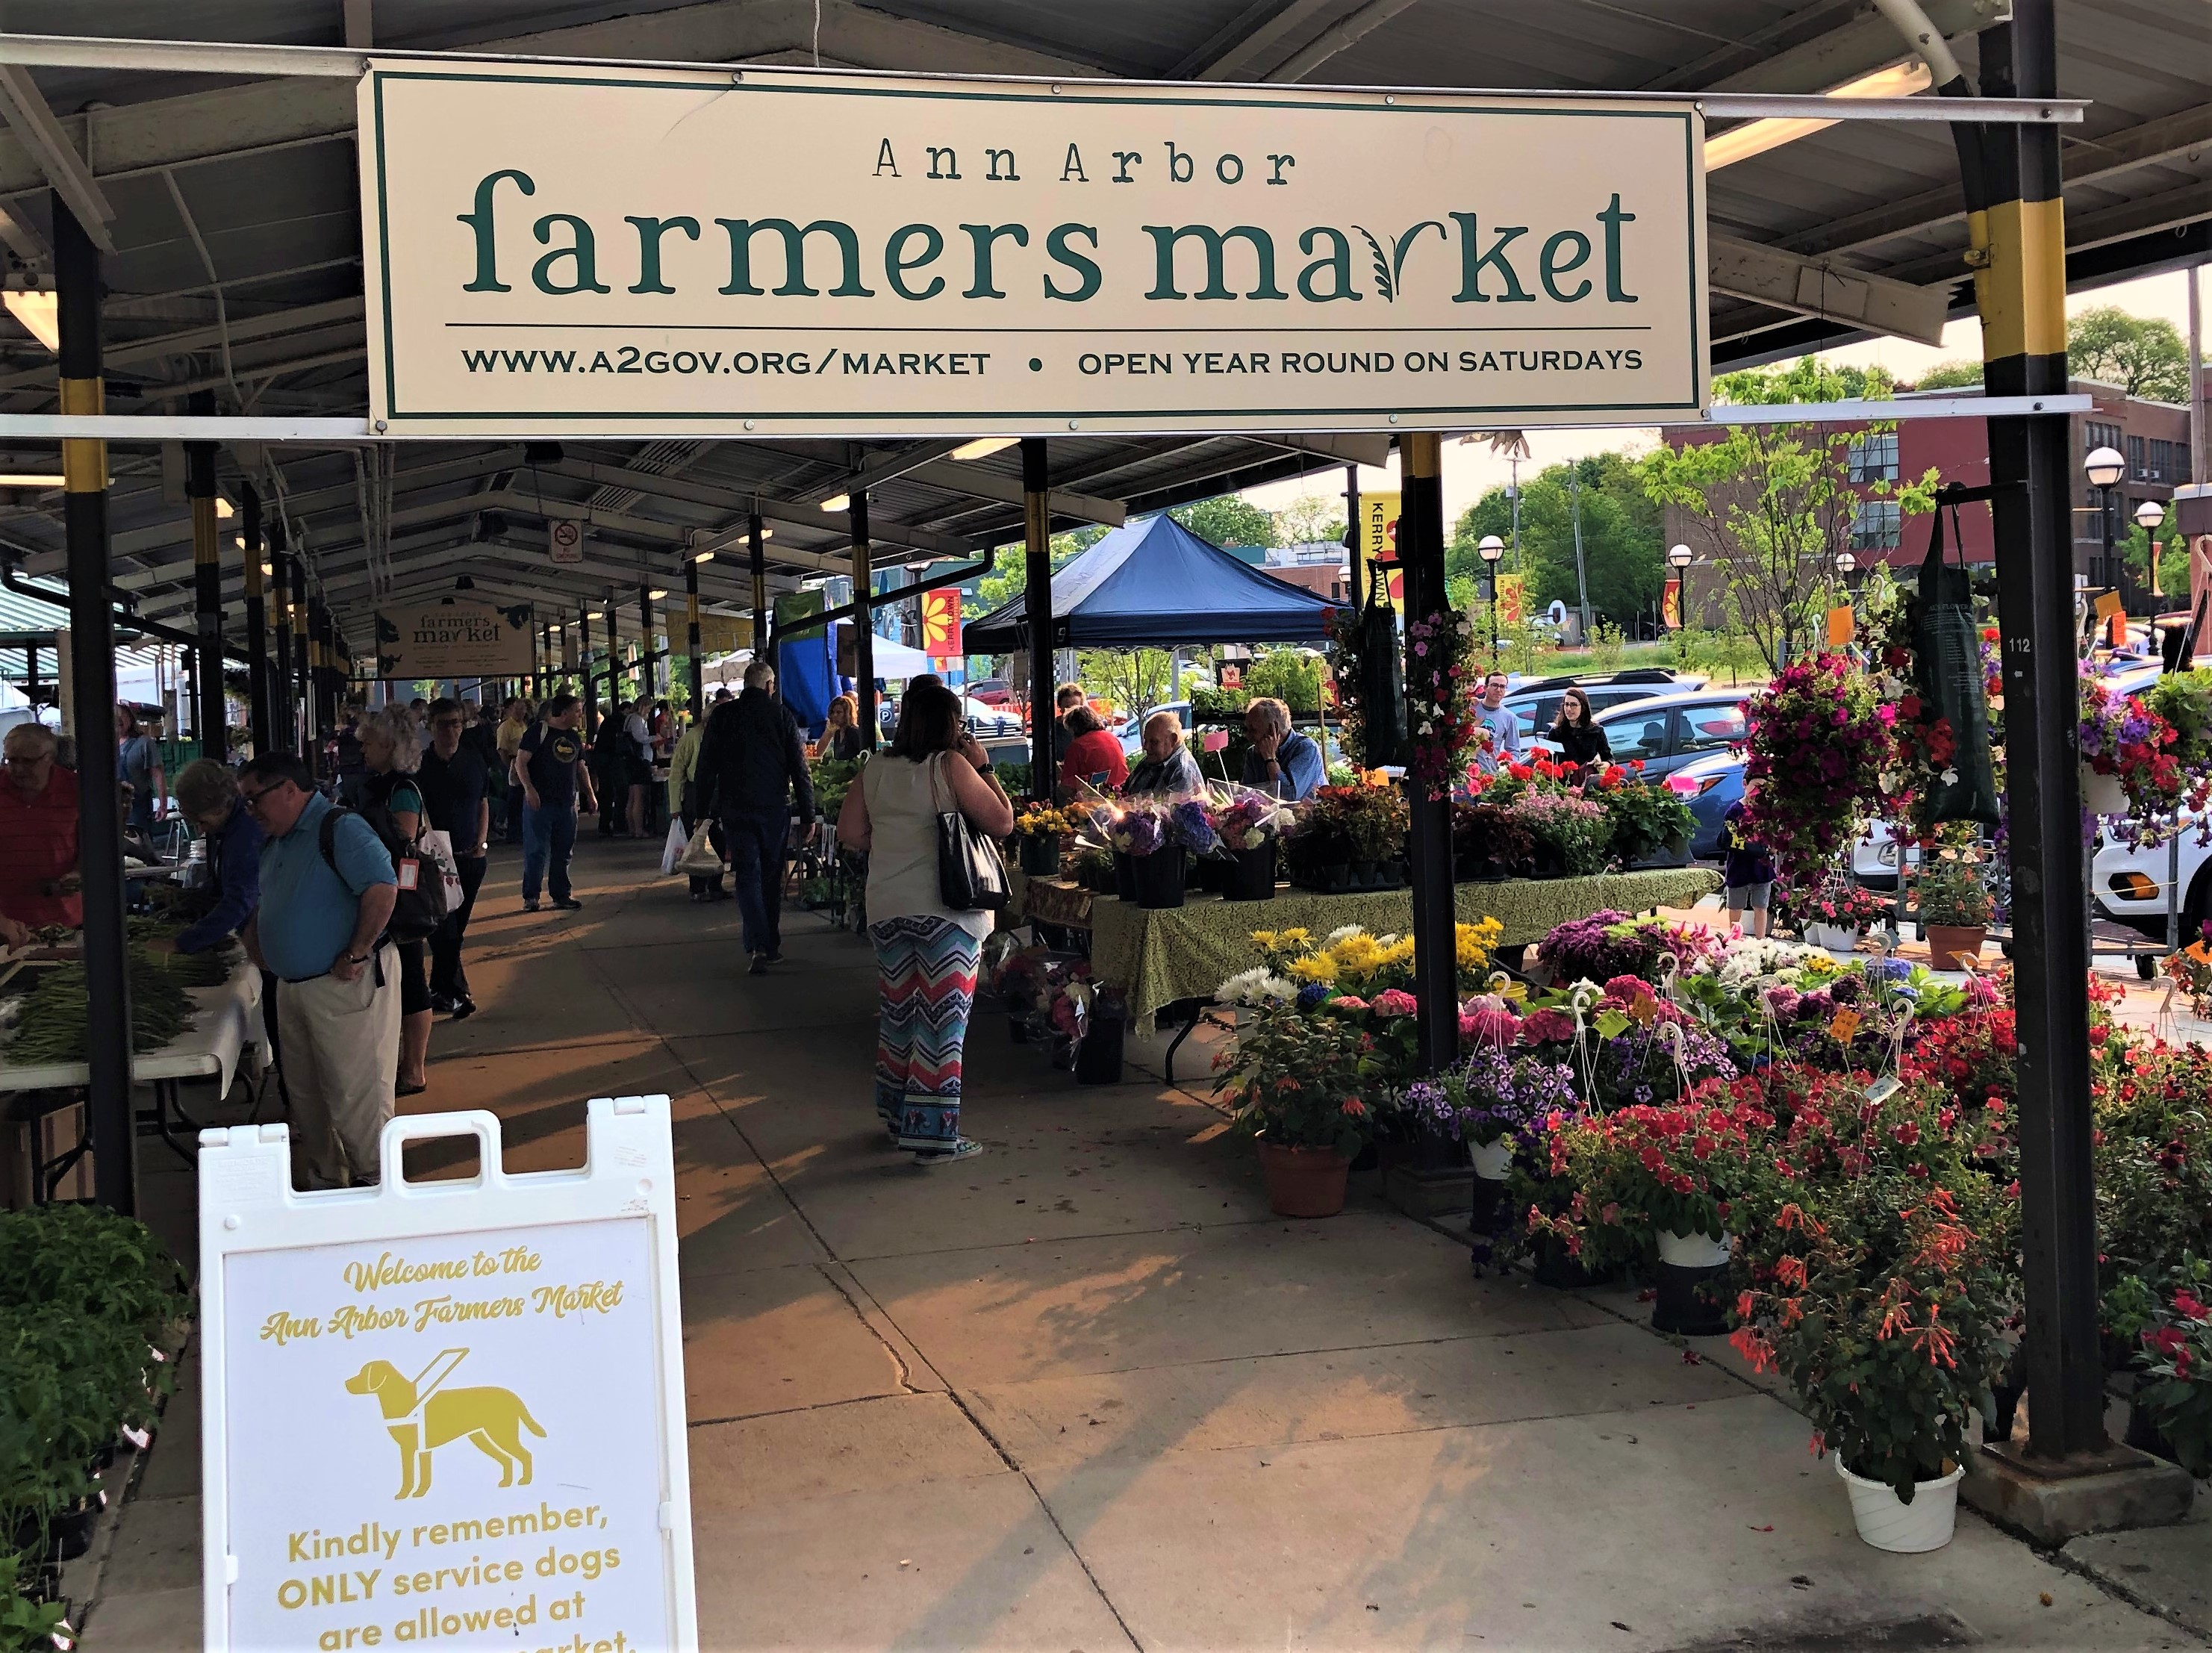 The Farmer's Market is one of many free things to do in Ann Arbor Michigan.